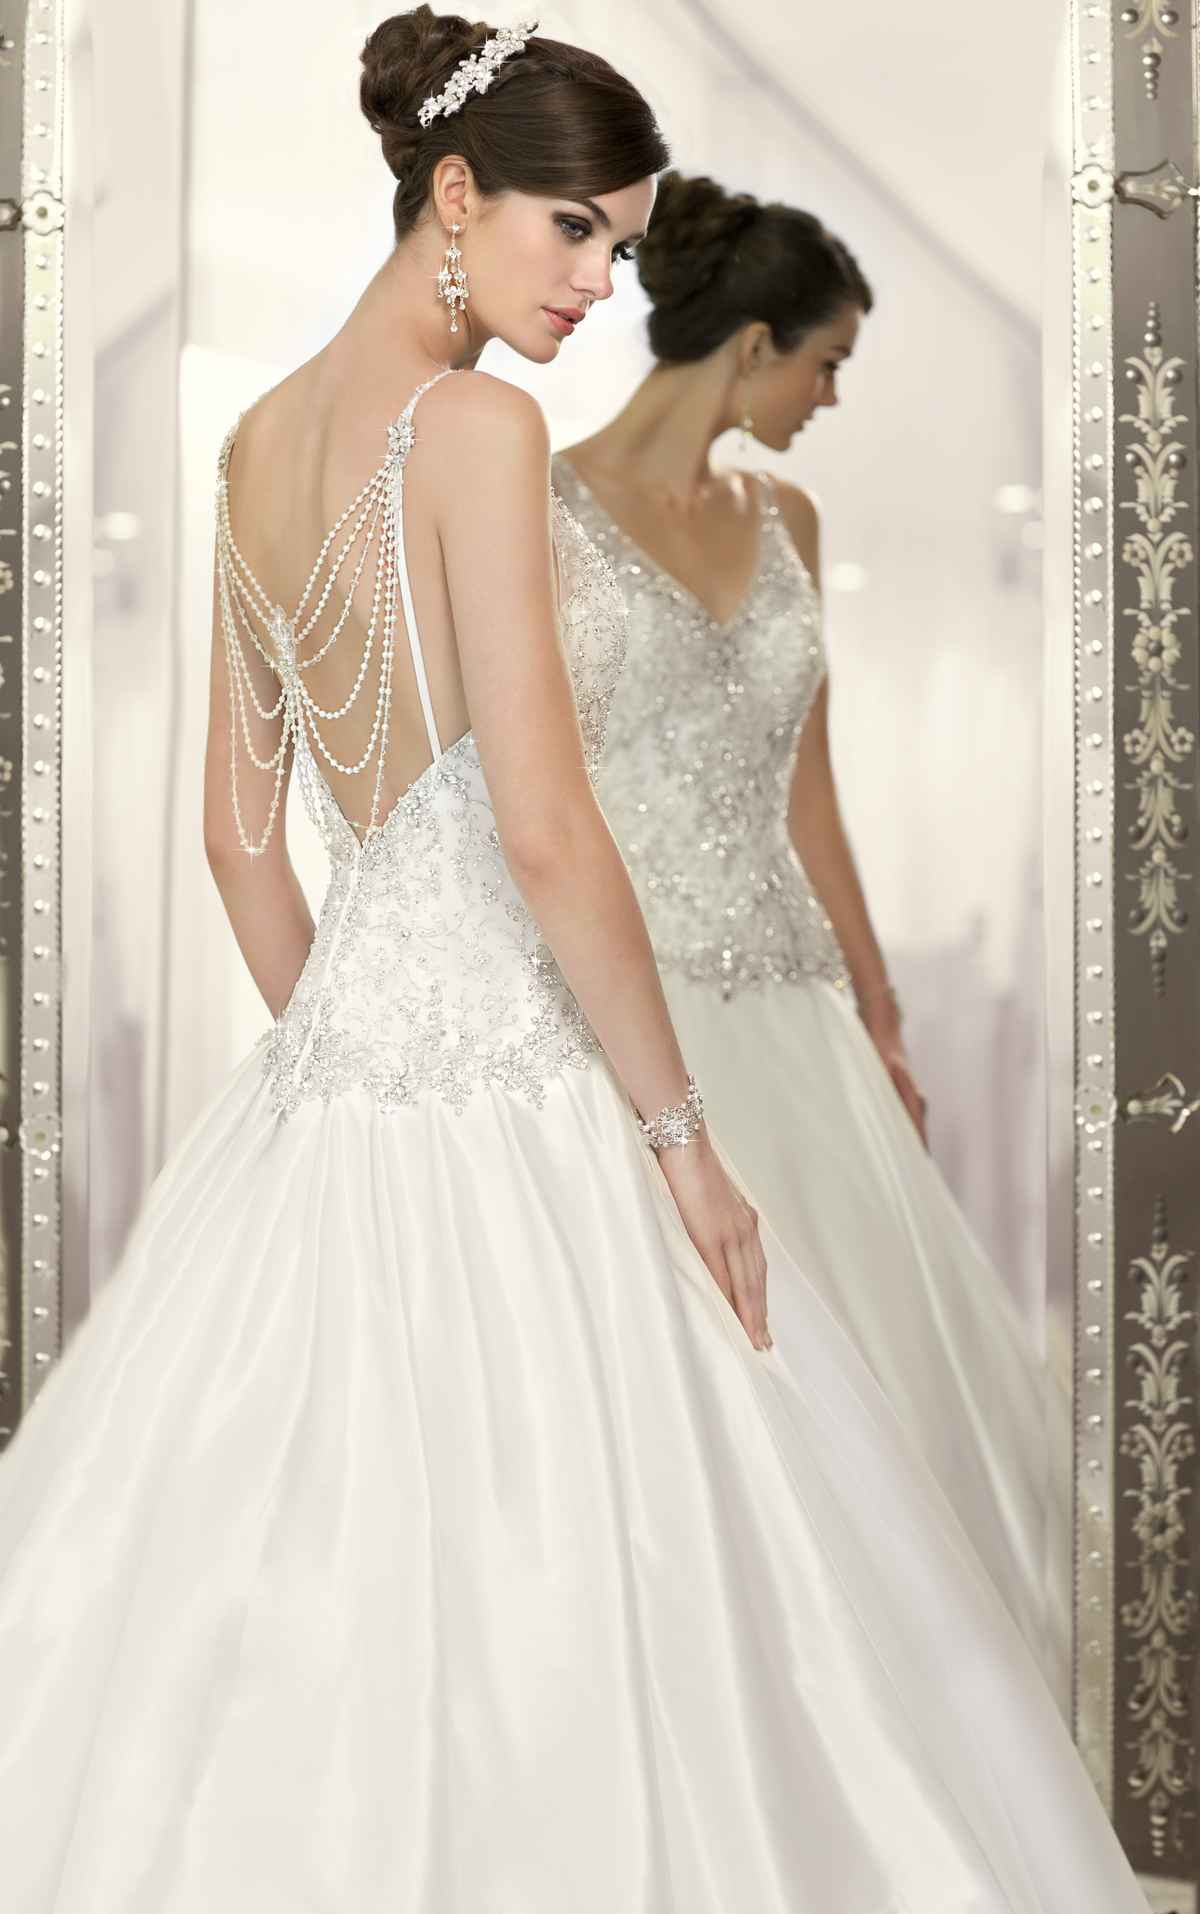 Essense of australia wedding dresses modwedding for Essence australia wedding dresses